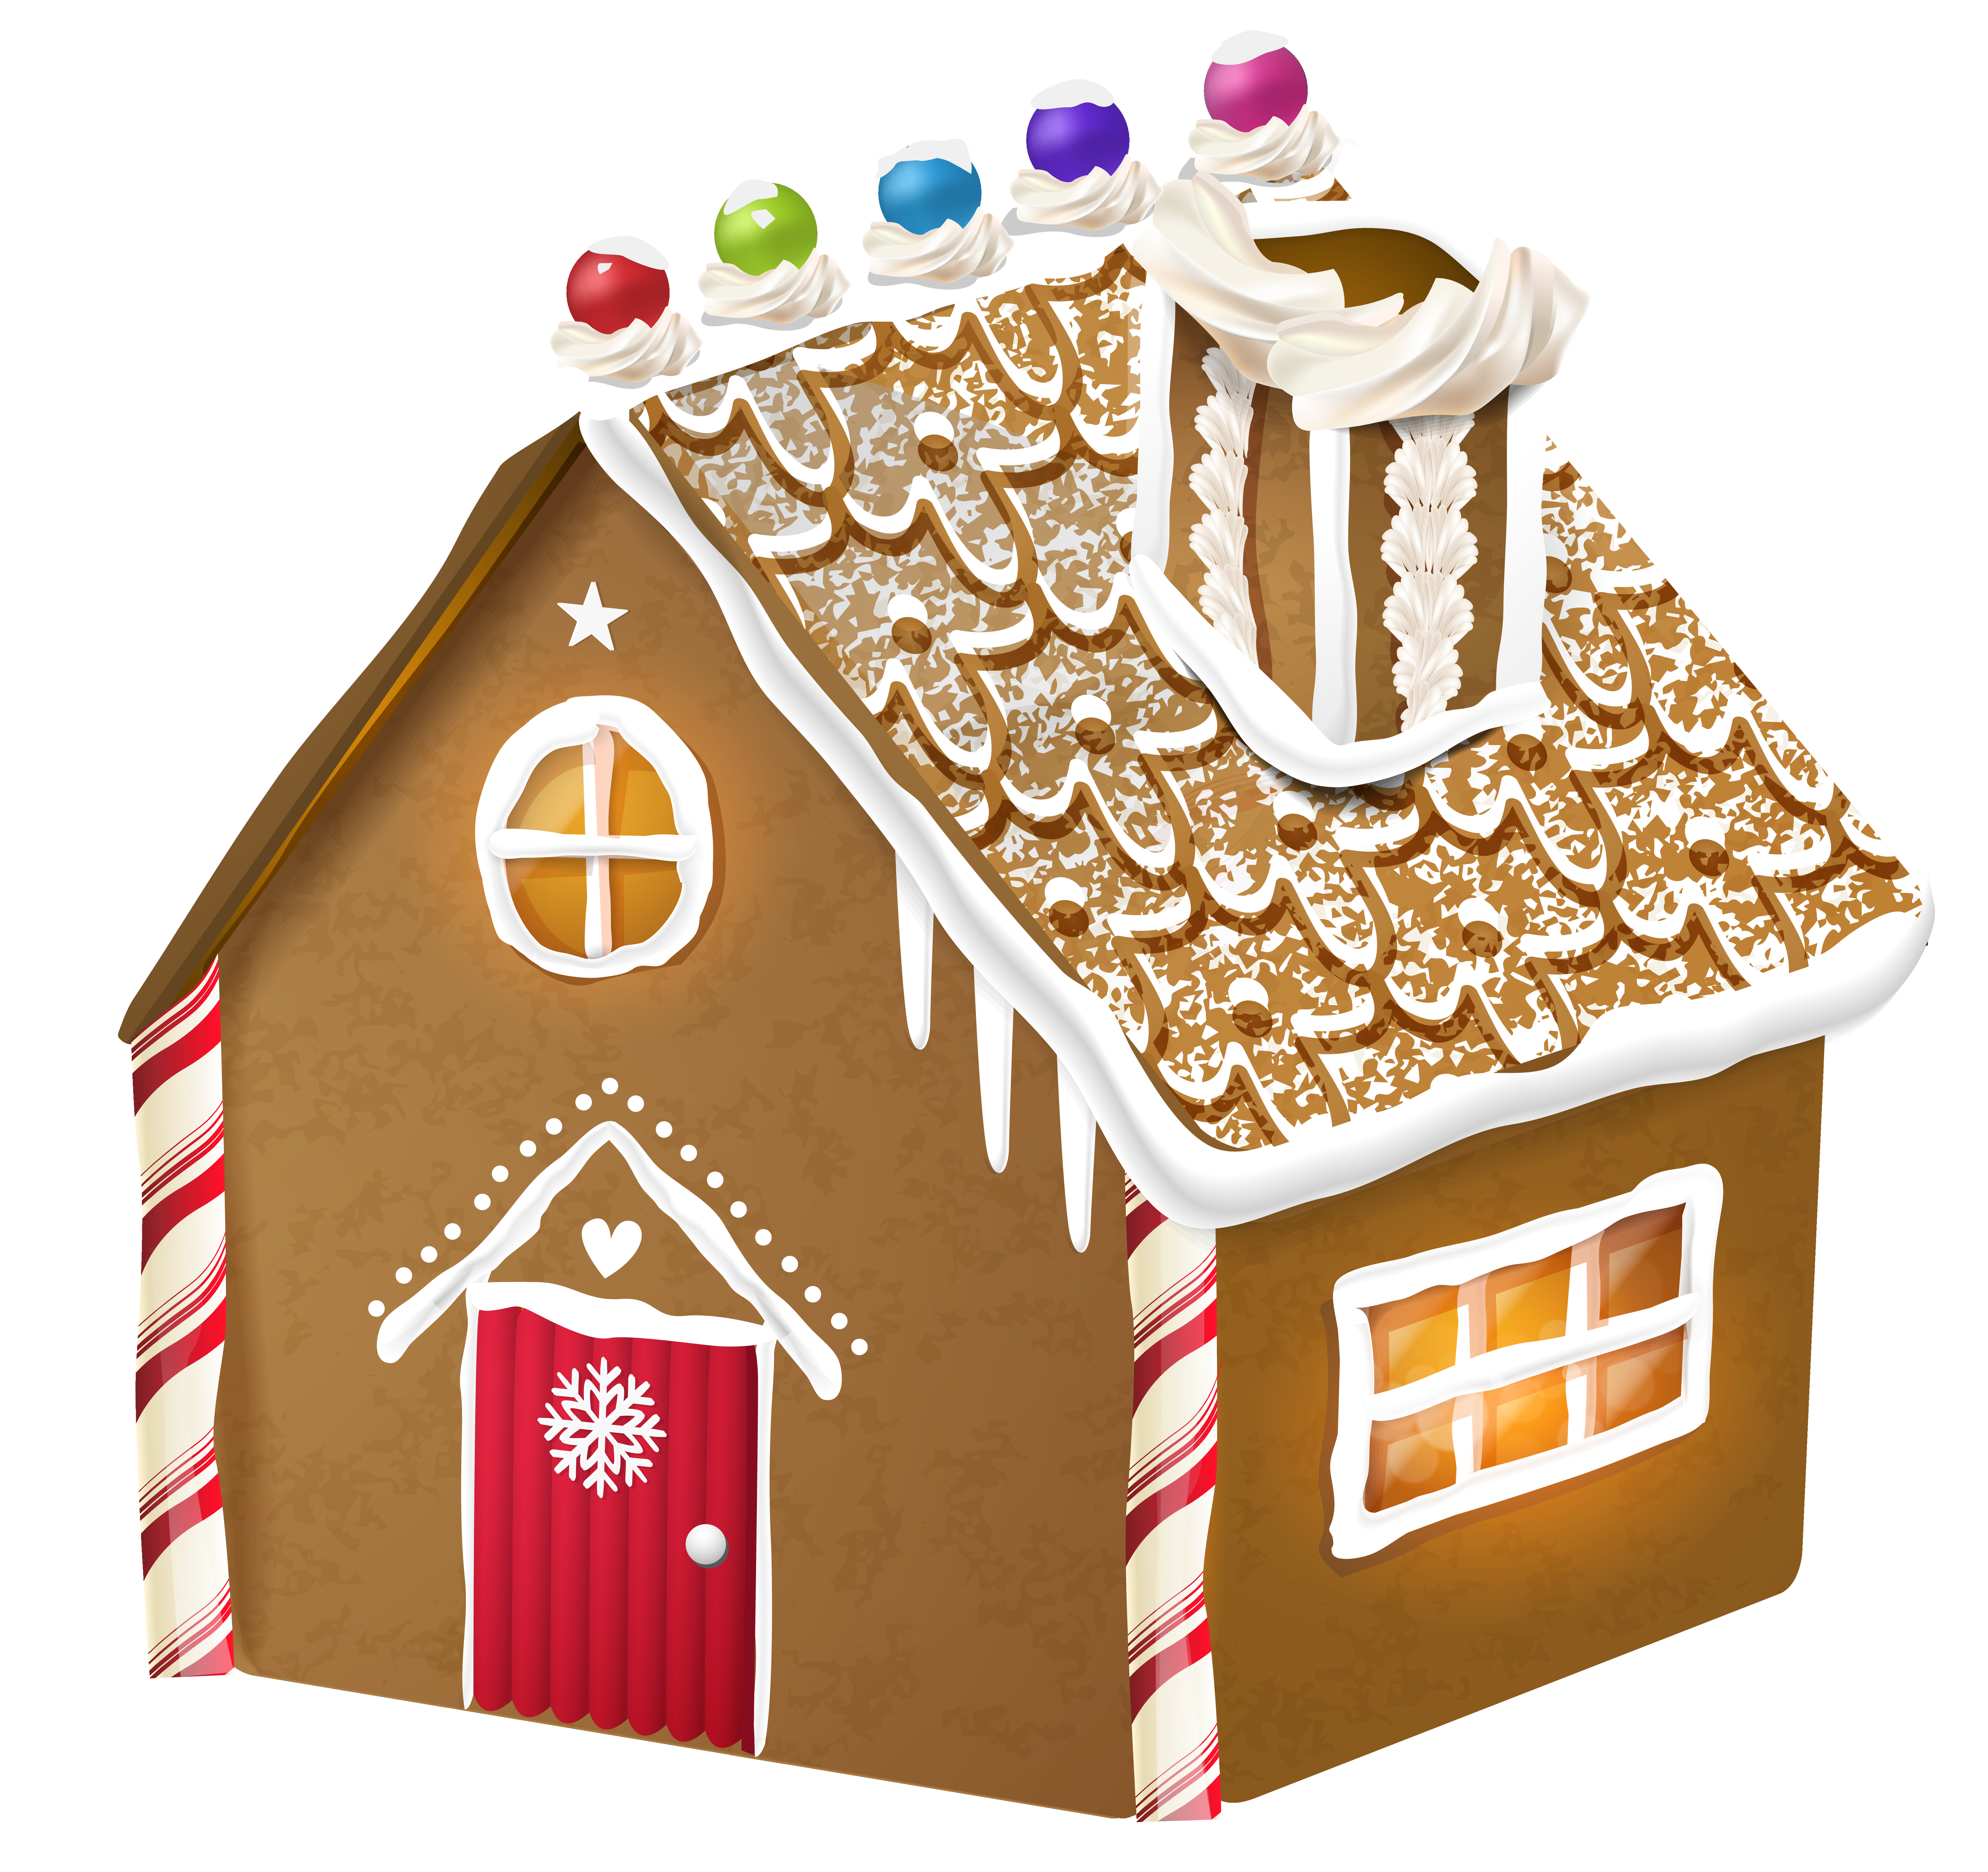 collection of png. Clipart door gingerbread house